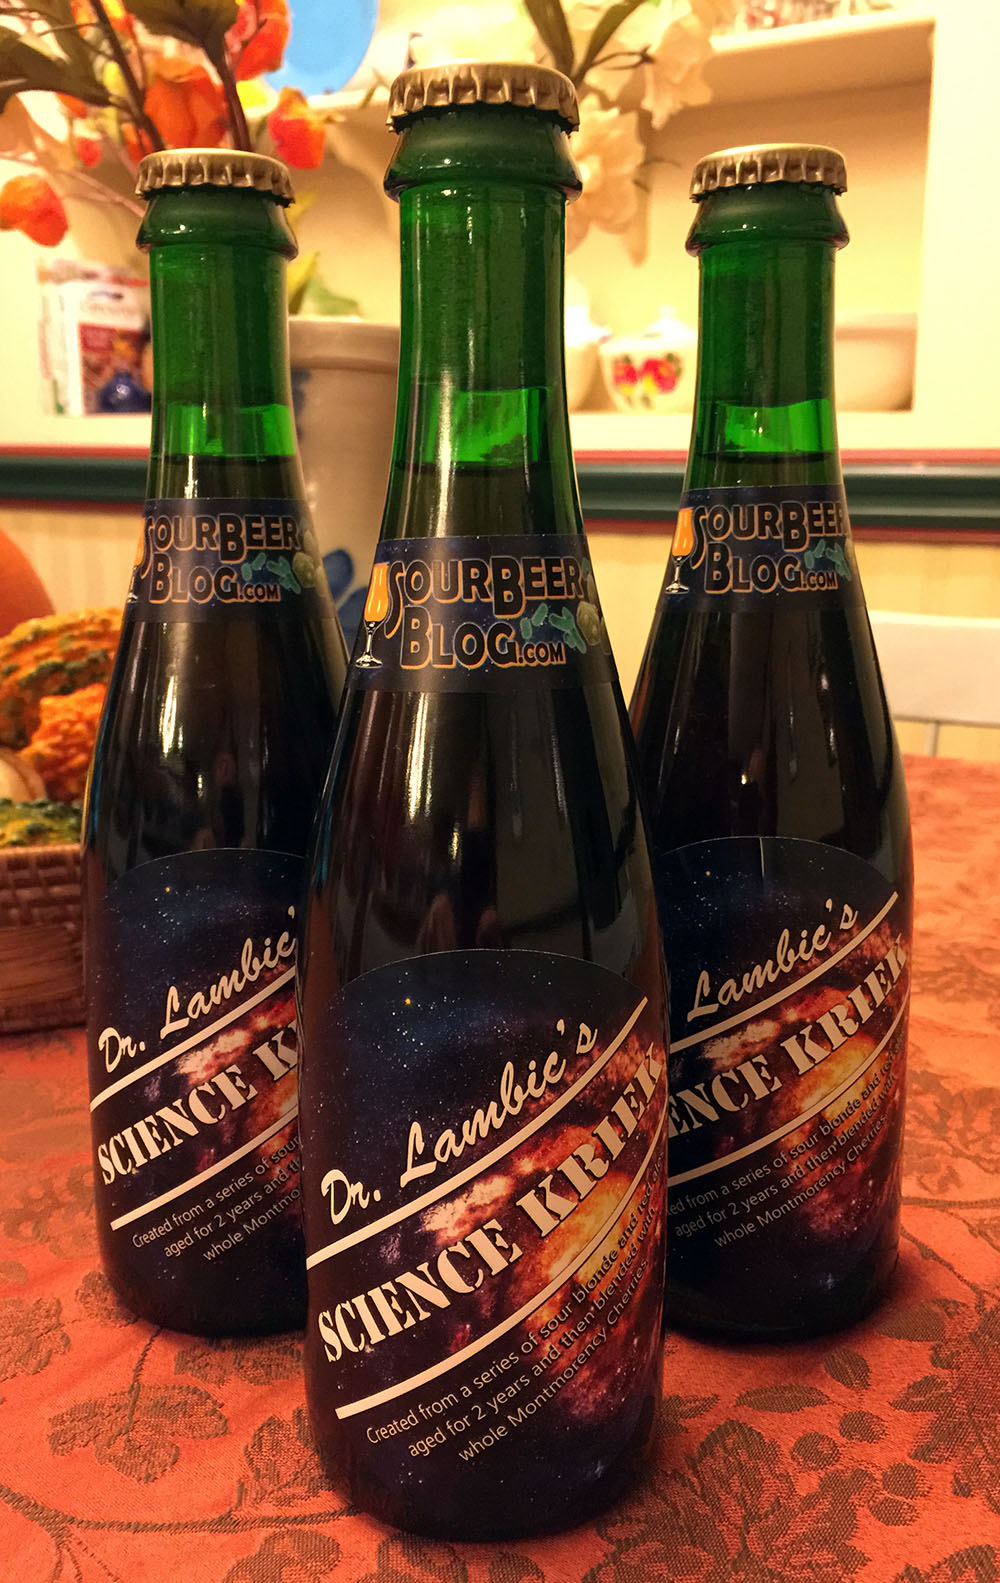 Science Kriek